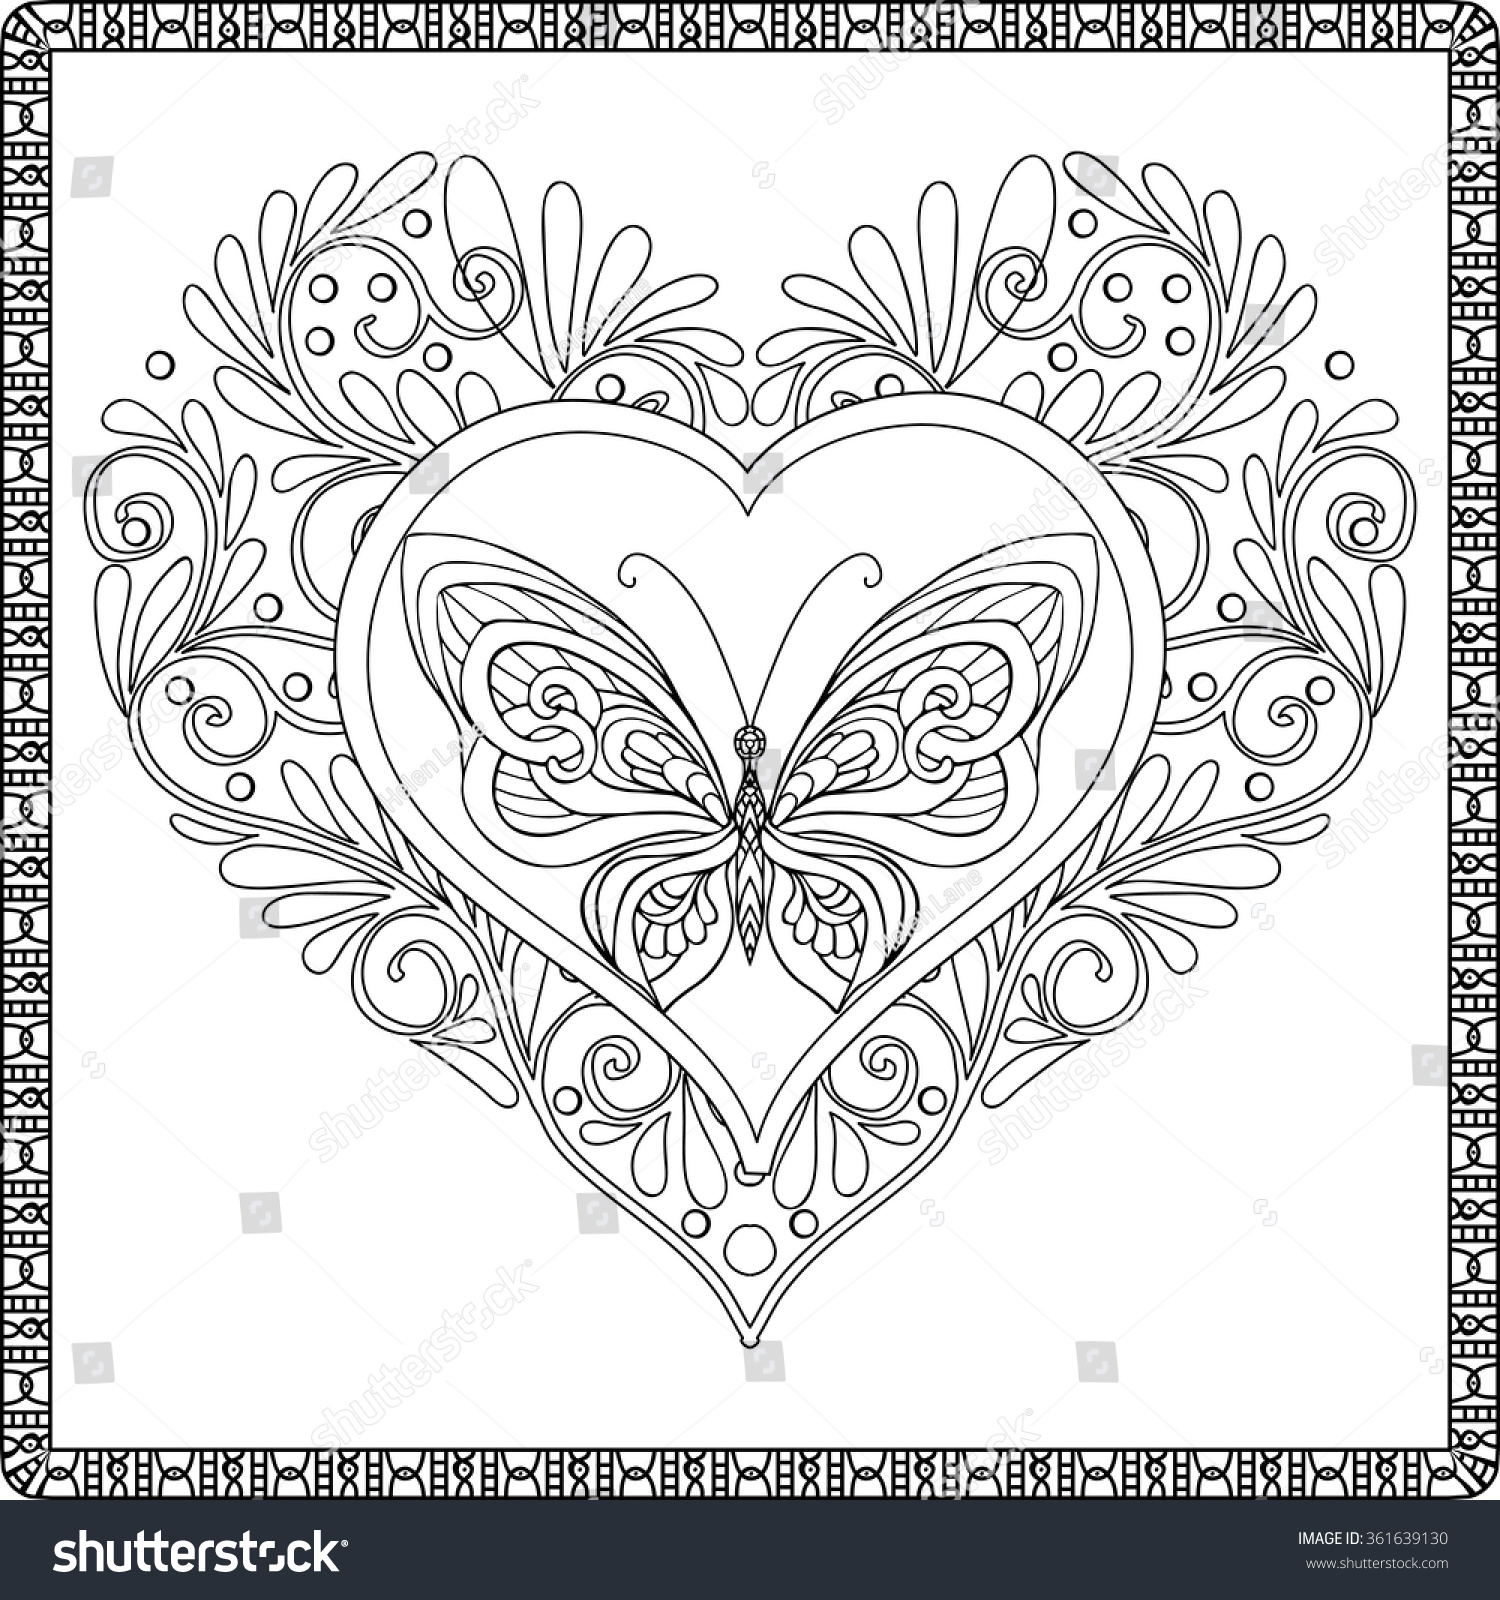 Love Heart with... Love Poem Coloring Pages For Adults